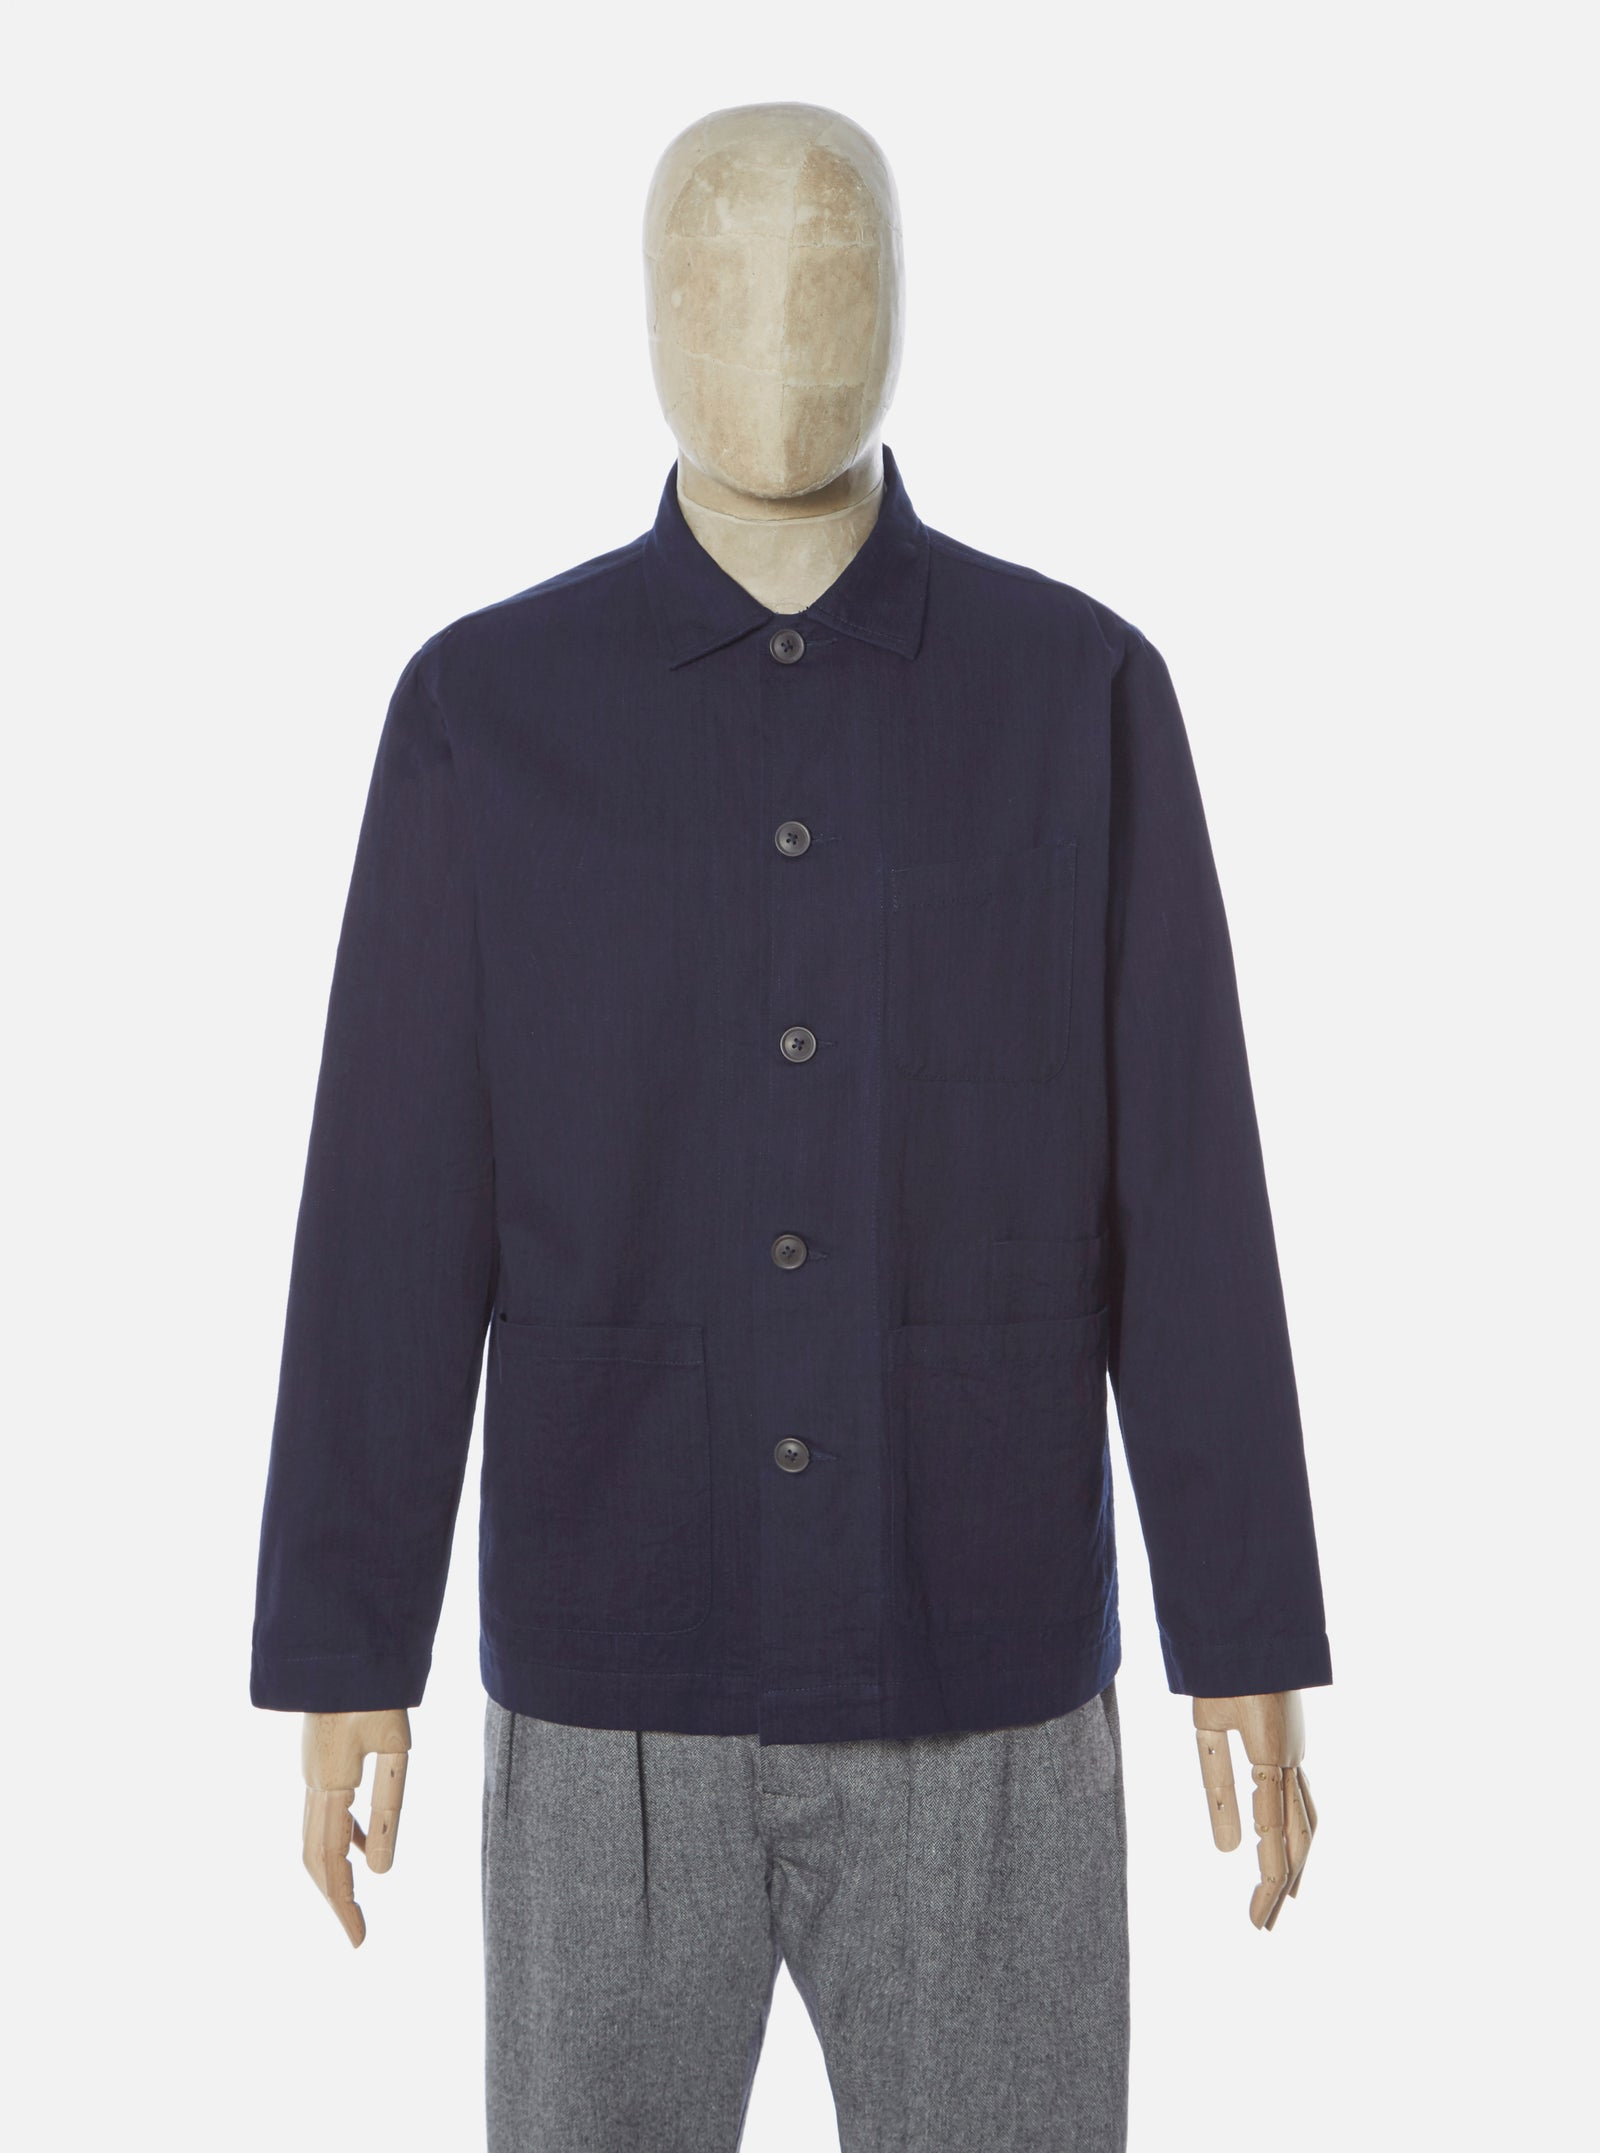 Universal Works Bakers Overshirt in Japanese Indigo Cotton